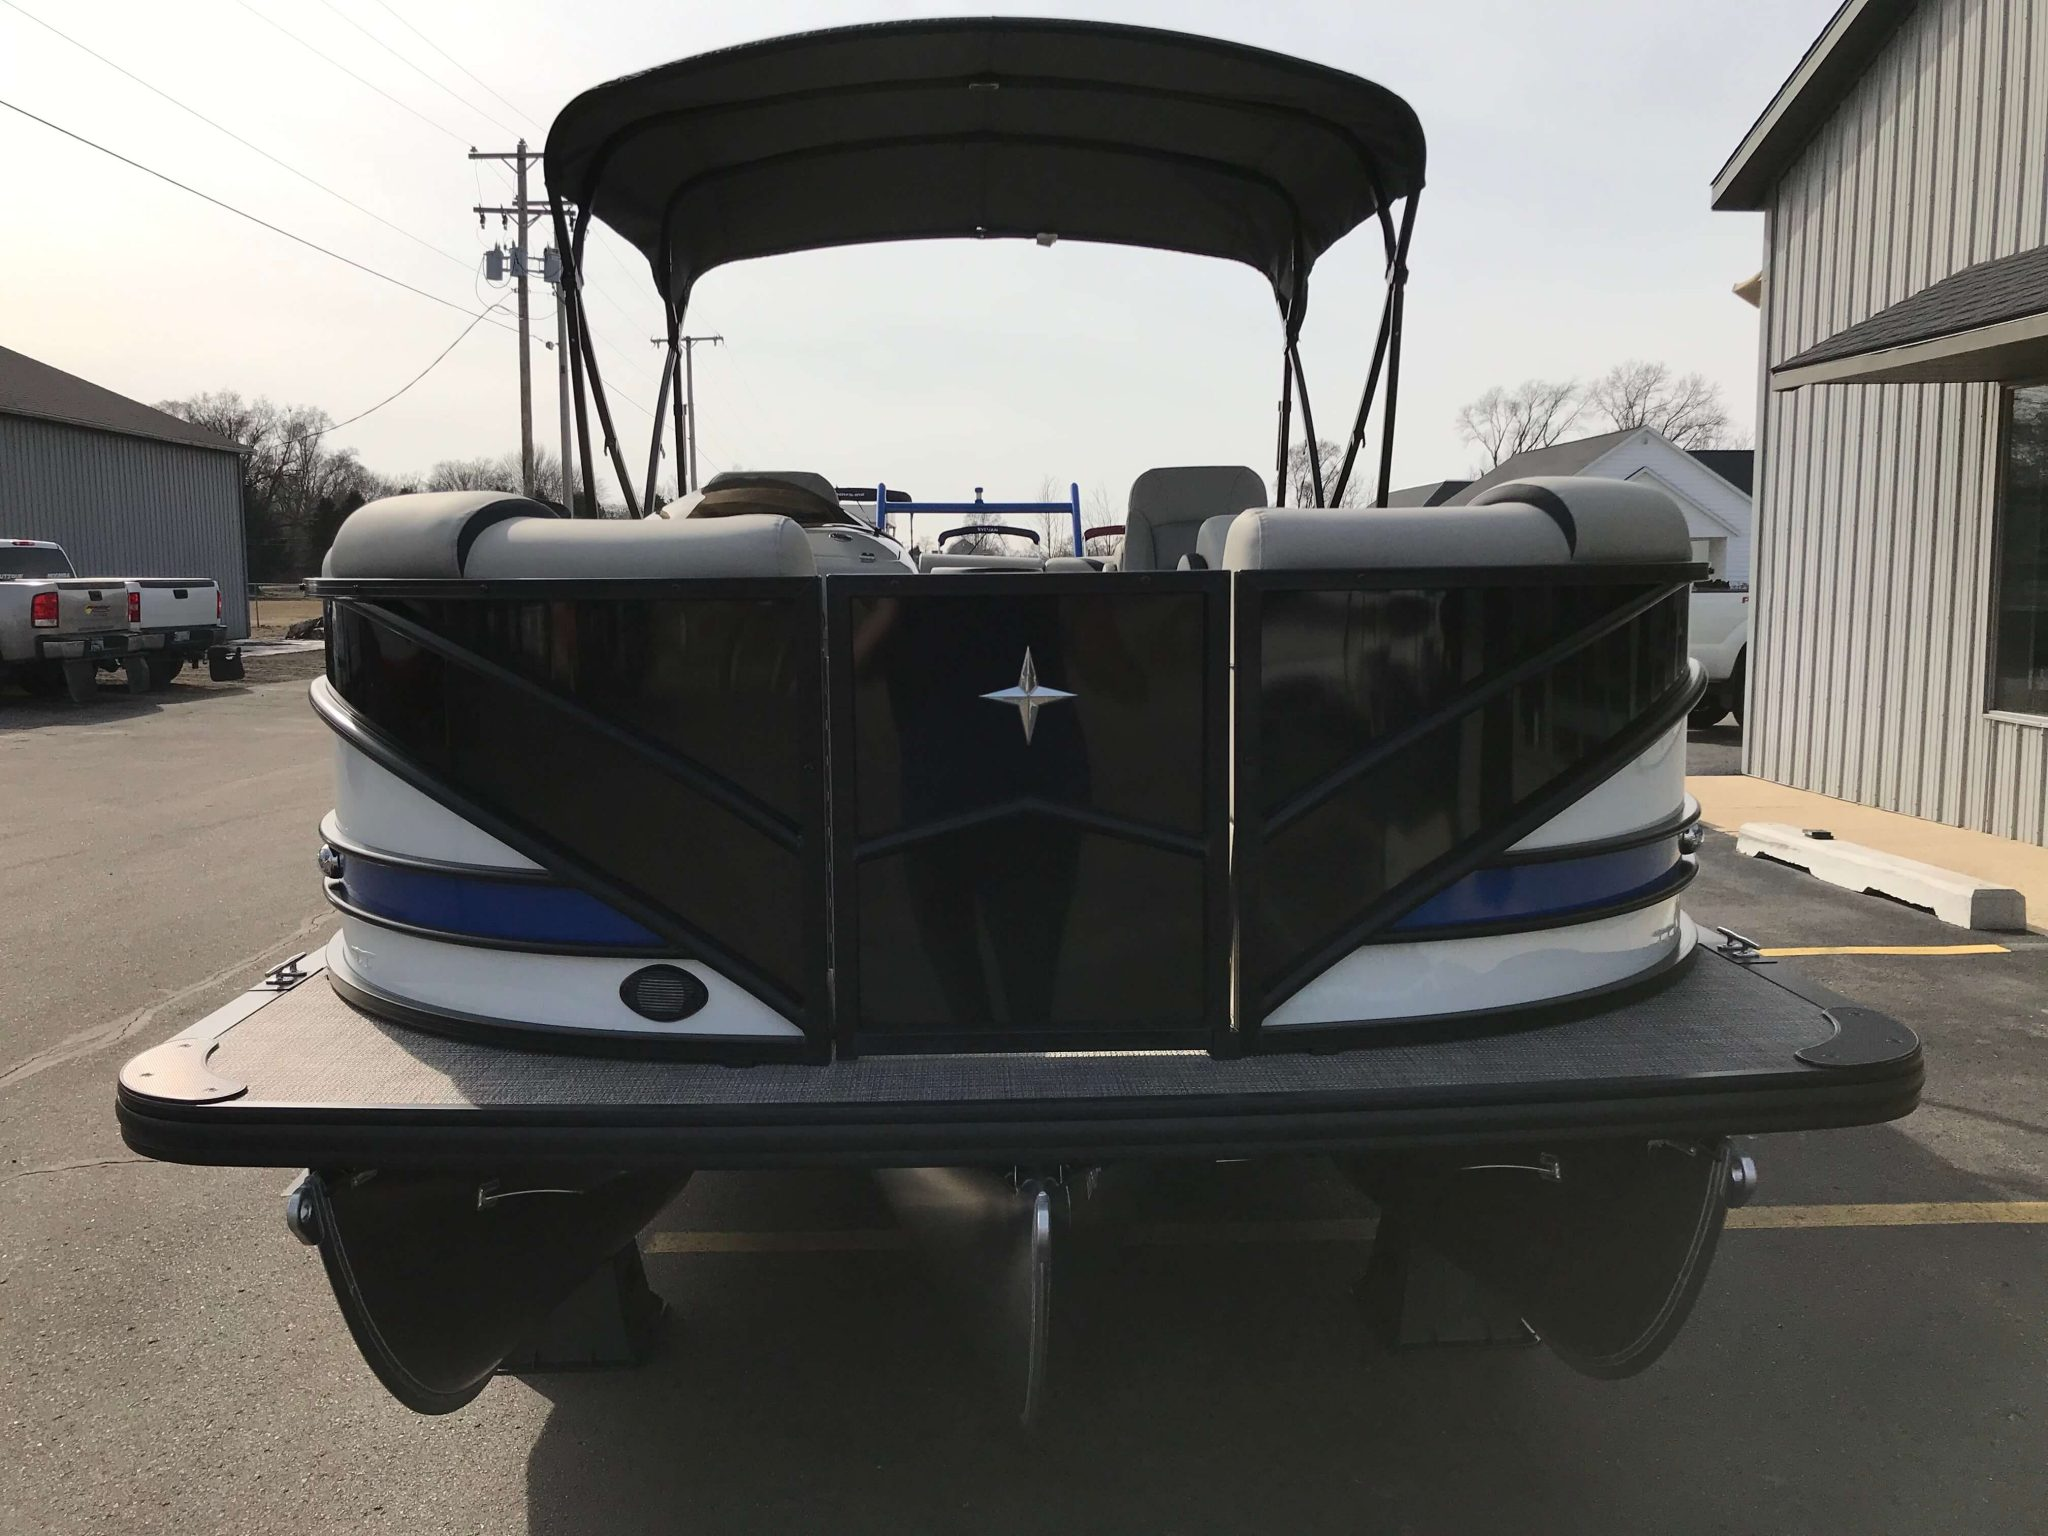 2019 Berkshire 23RFX Bimini Top 2